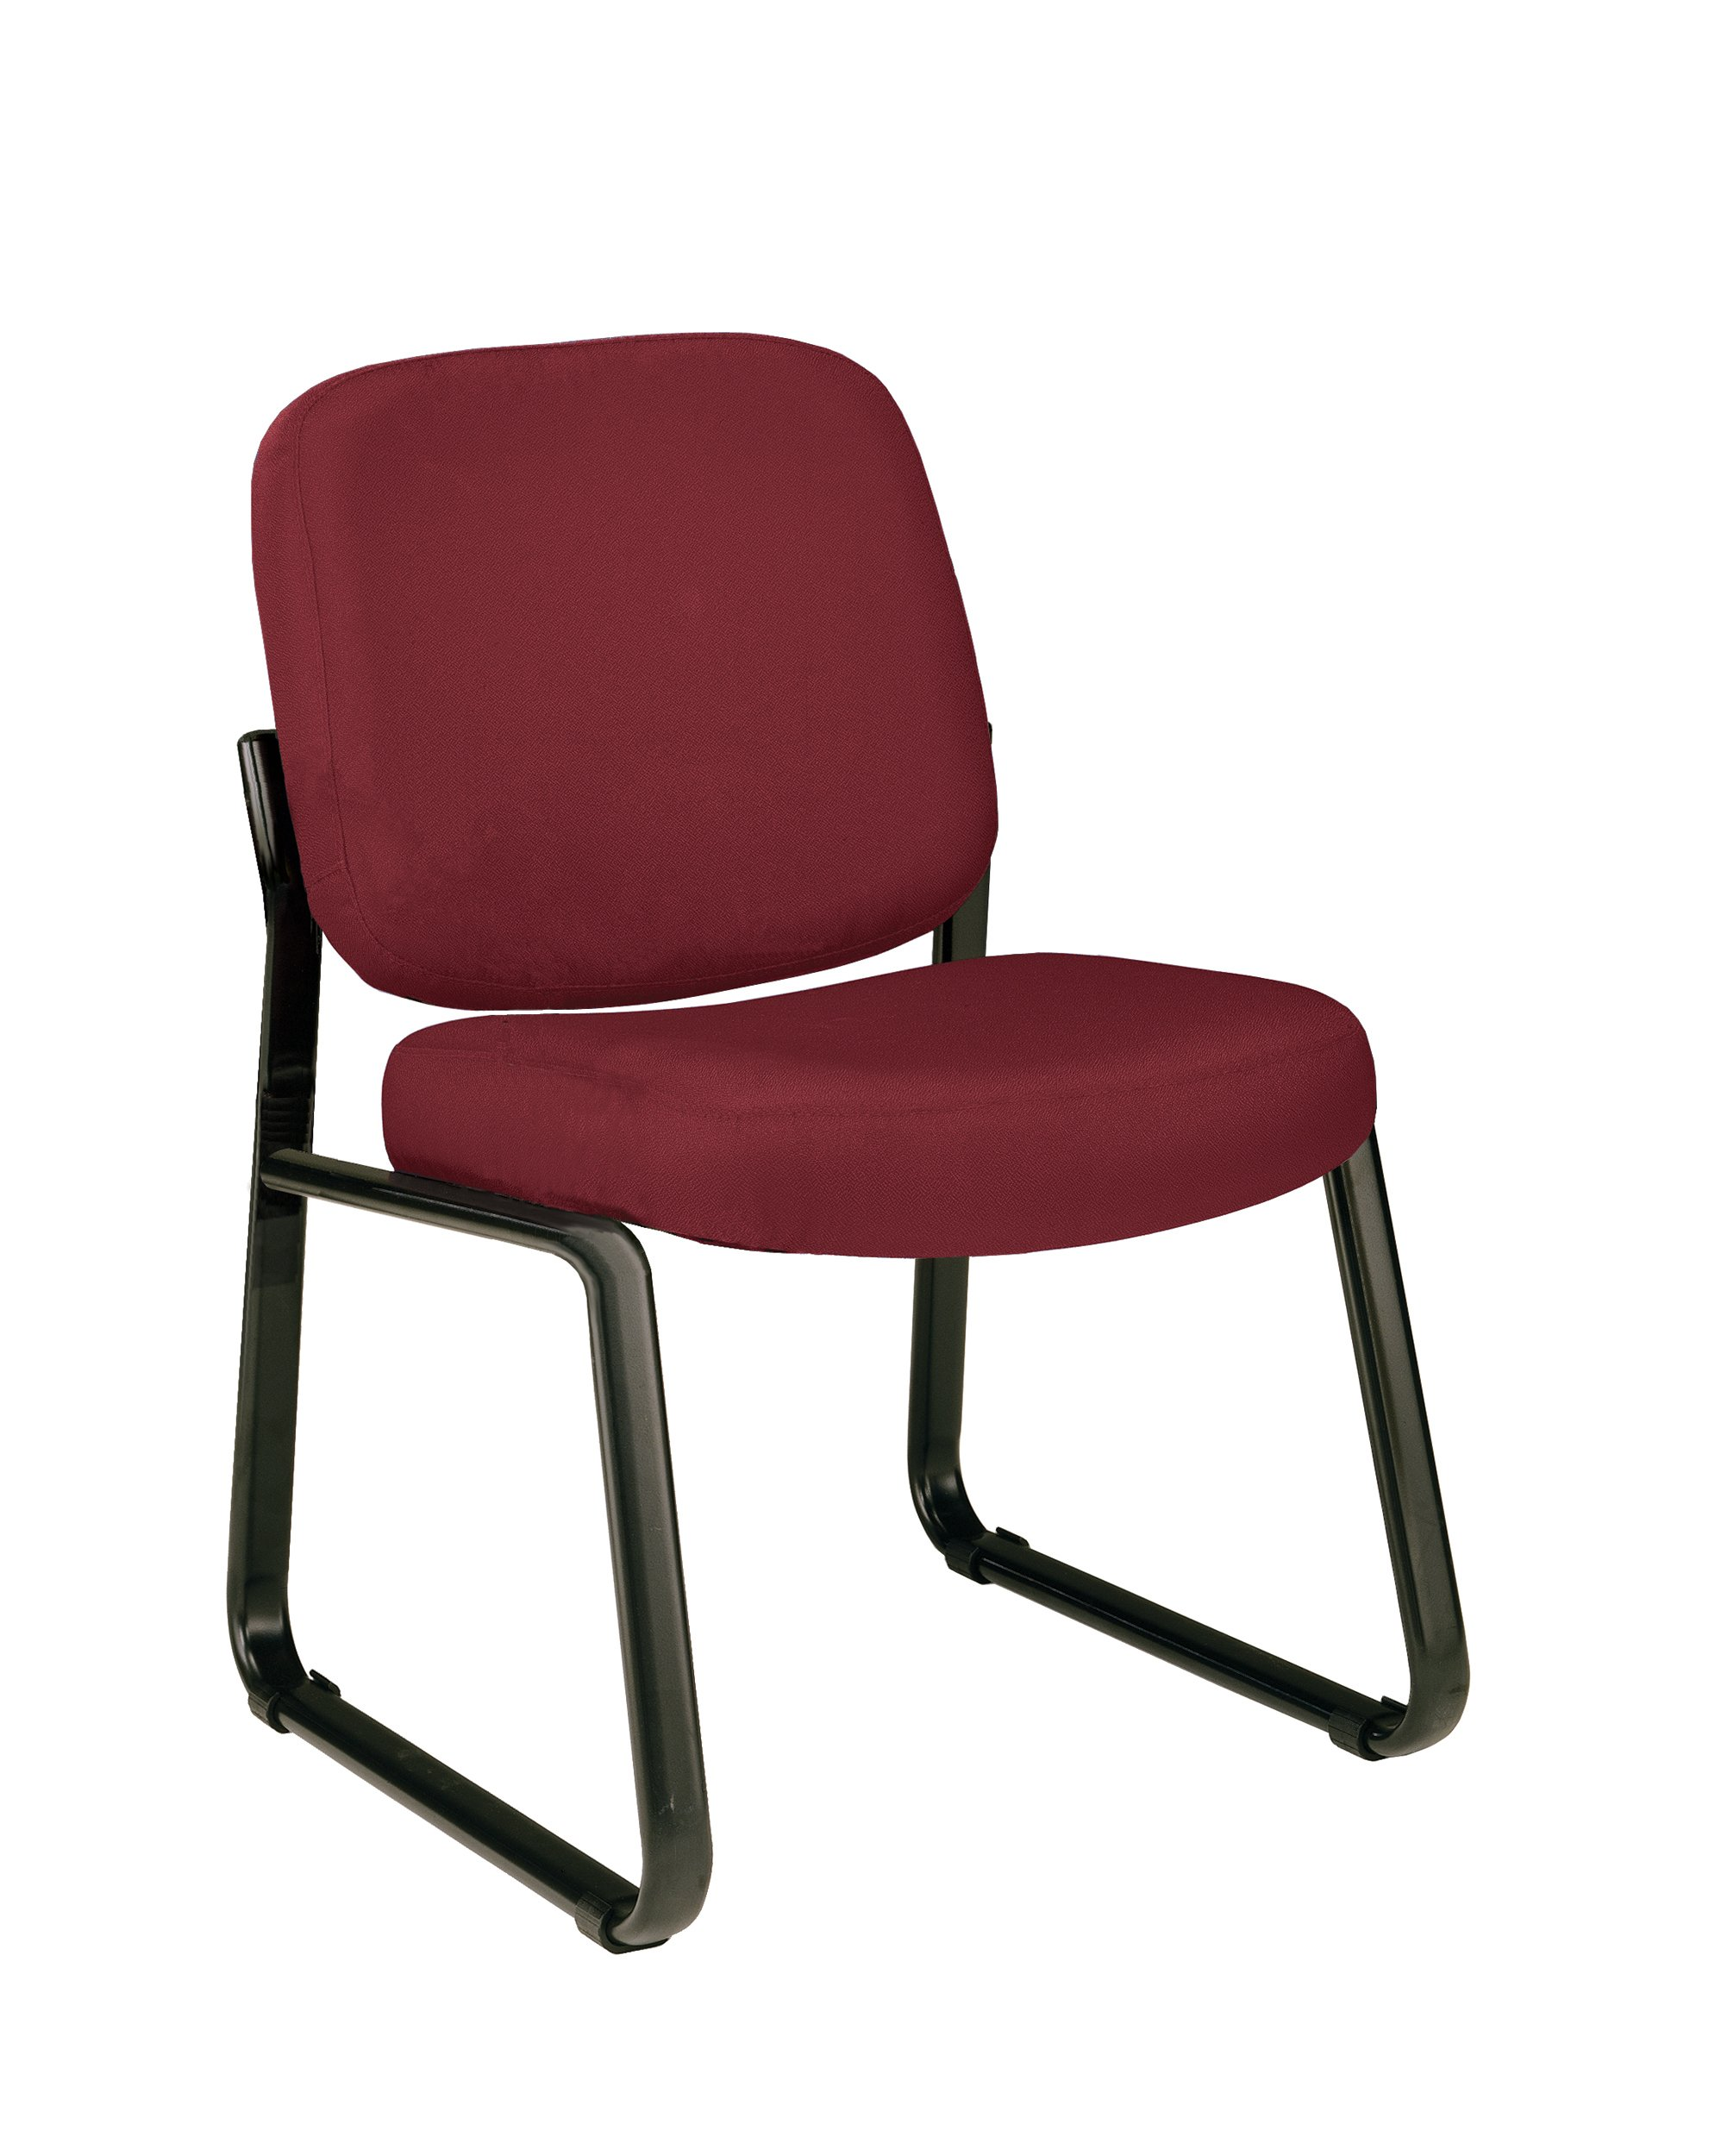 OFM 405-803 Armless Reception Chair - Mid-Back Guest Chair, Wine